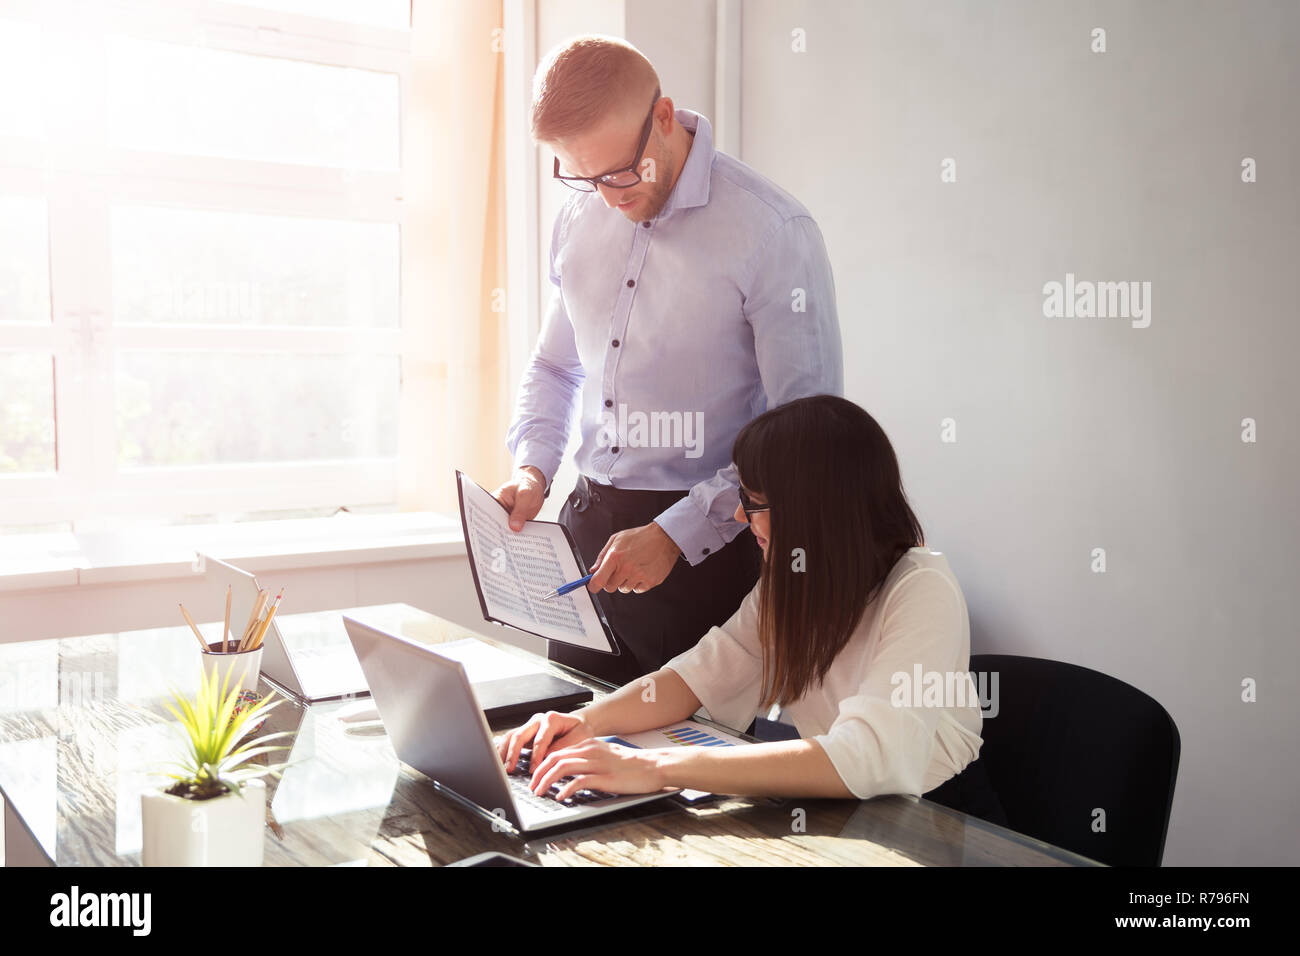 Businessman Showing Document To His Partner - Stock Image